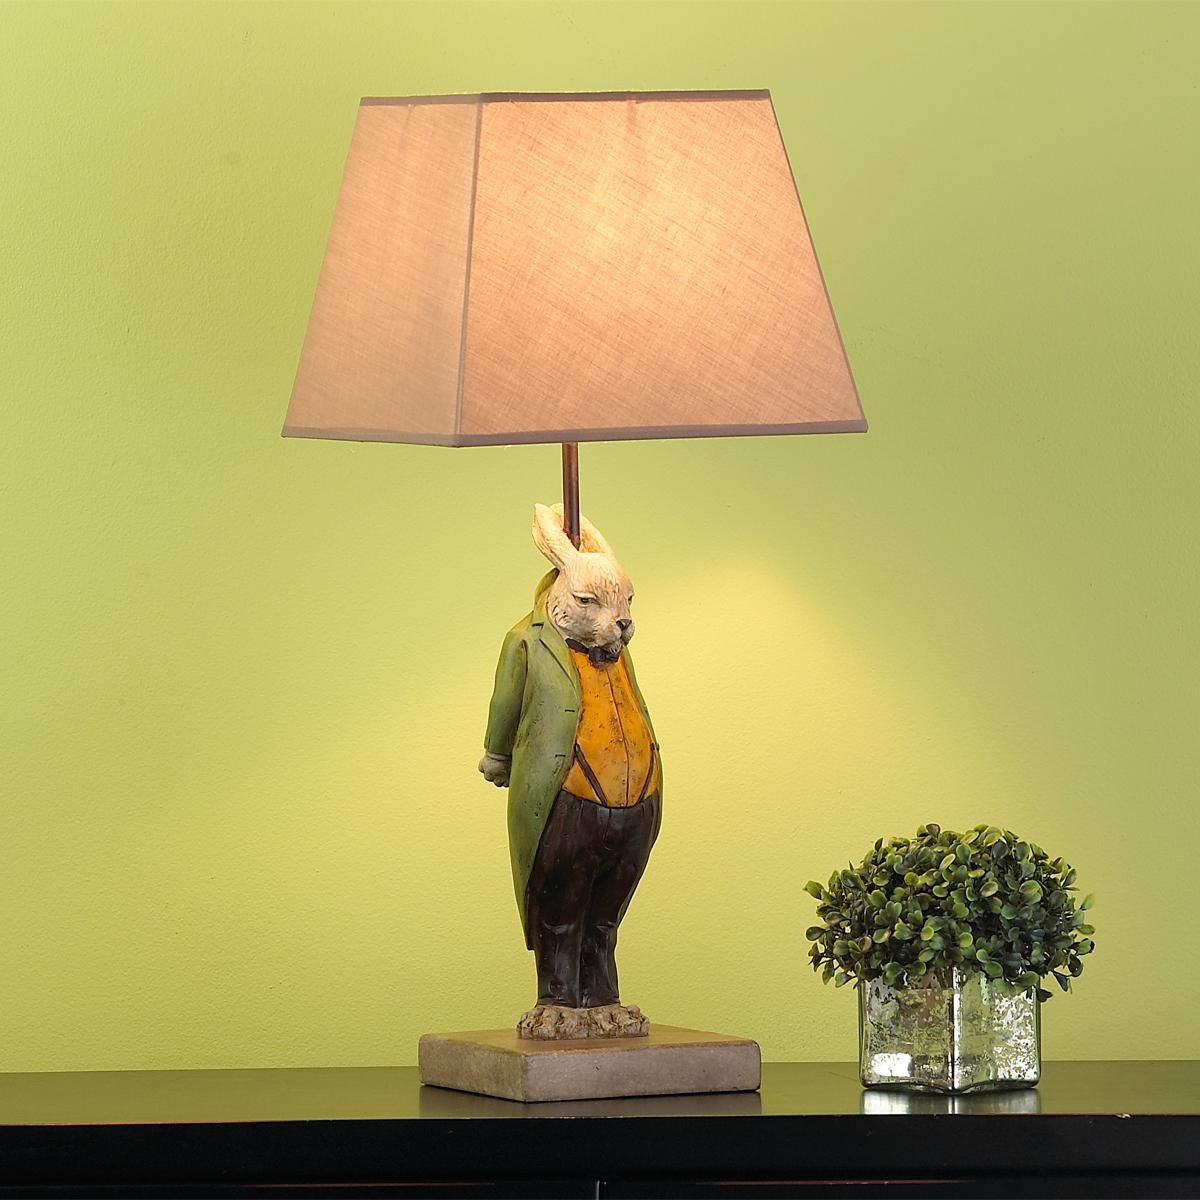 Mr rabbit table lamp rabbits remind me of one of my good friends mr rabbit table lamp rabbits remind me of one of my good friends aloadofball Image collections